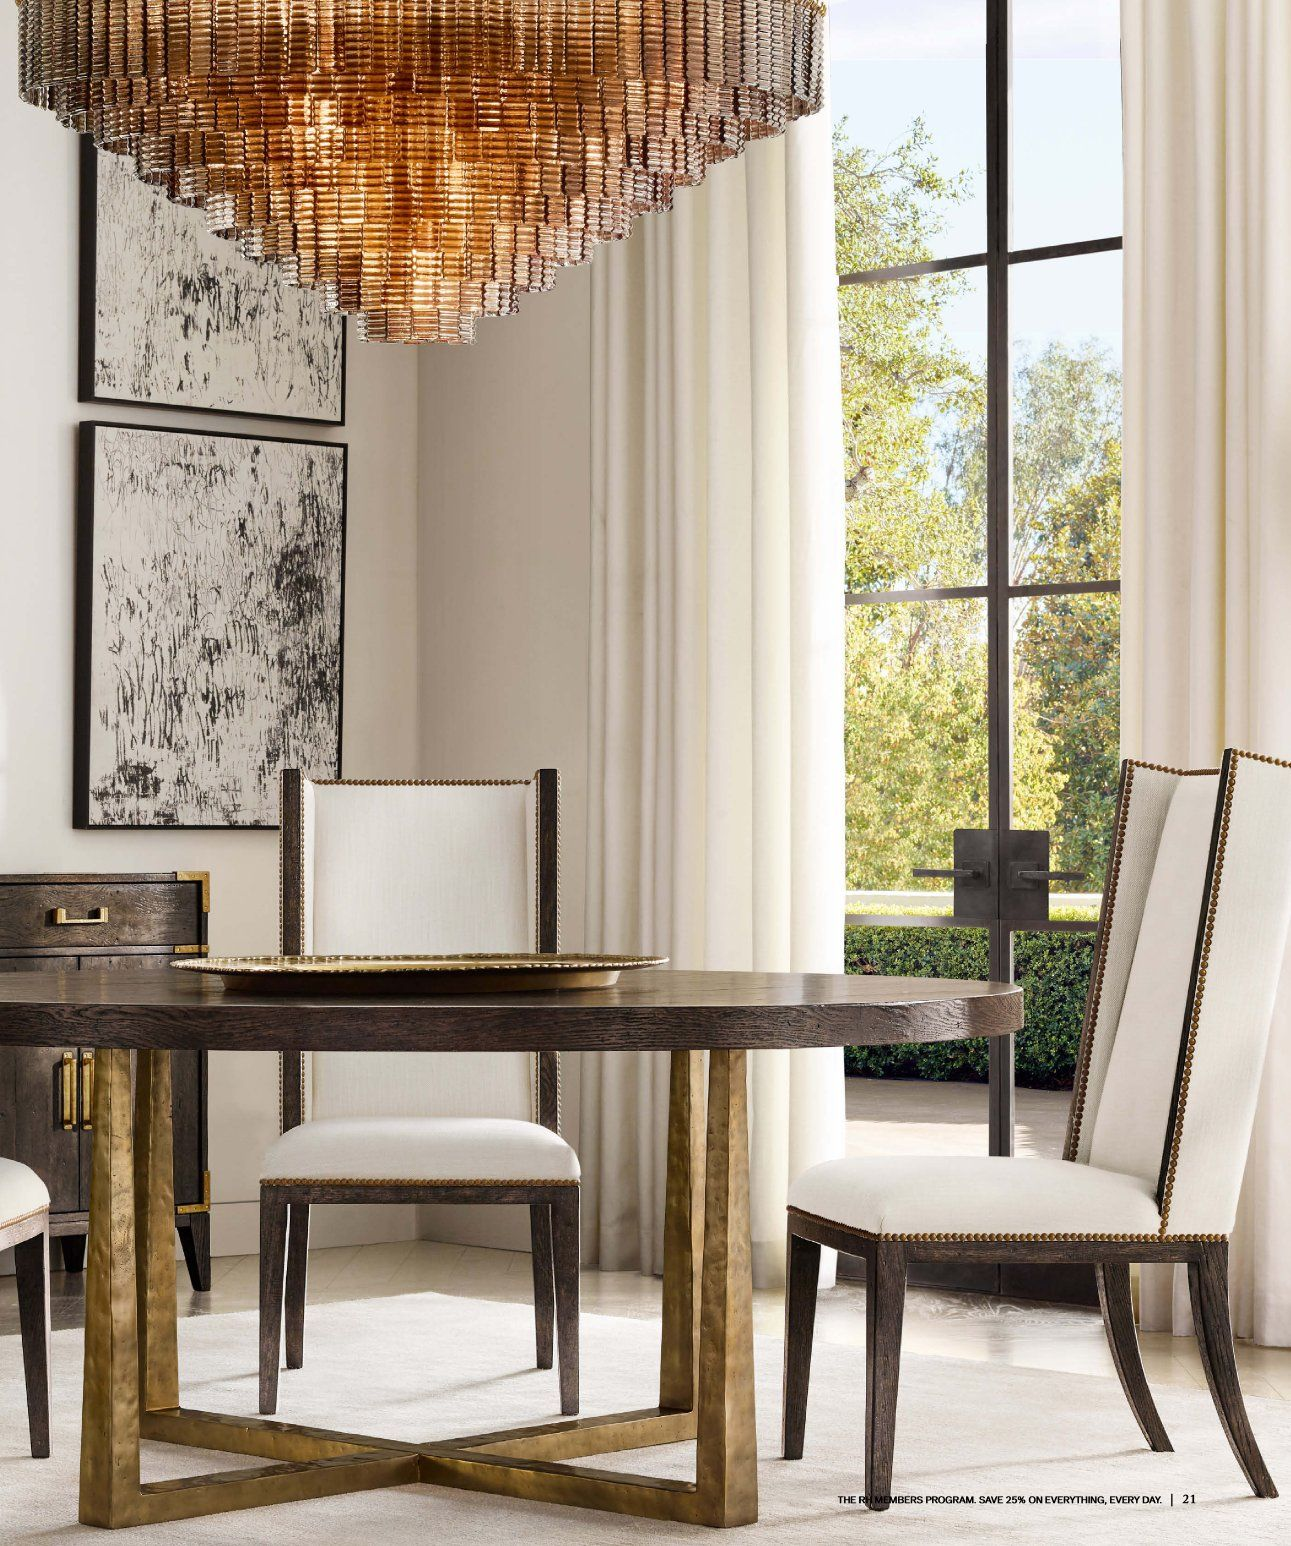 RH Source Books RH Interiors 21 | Round dining table, Round dining